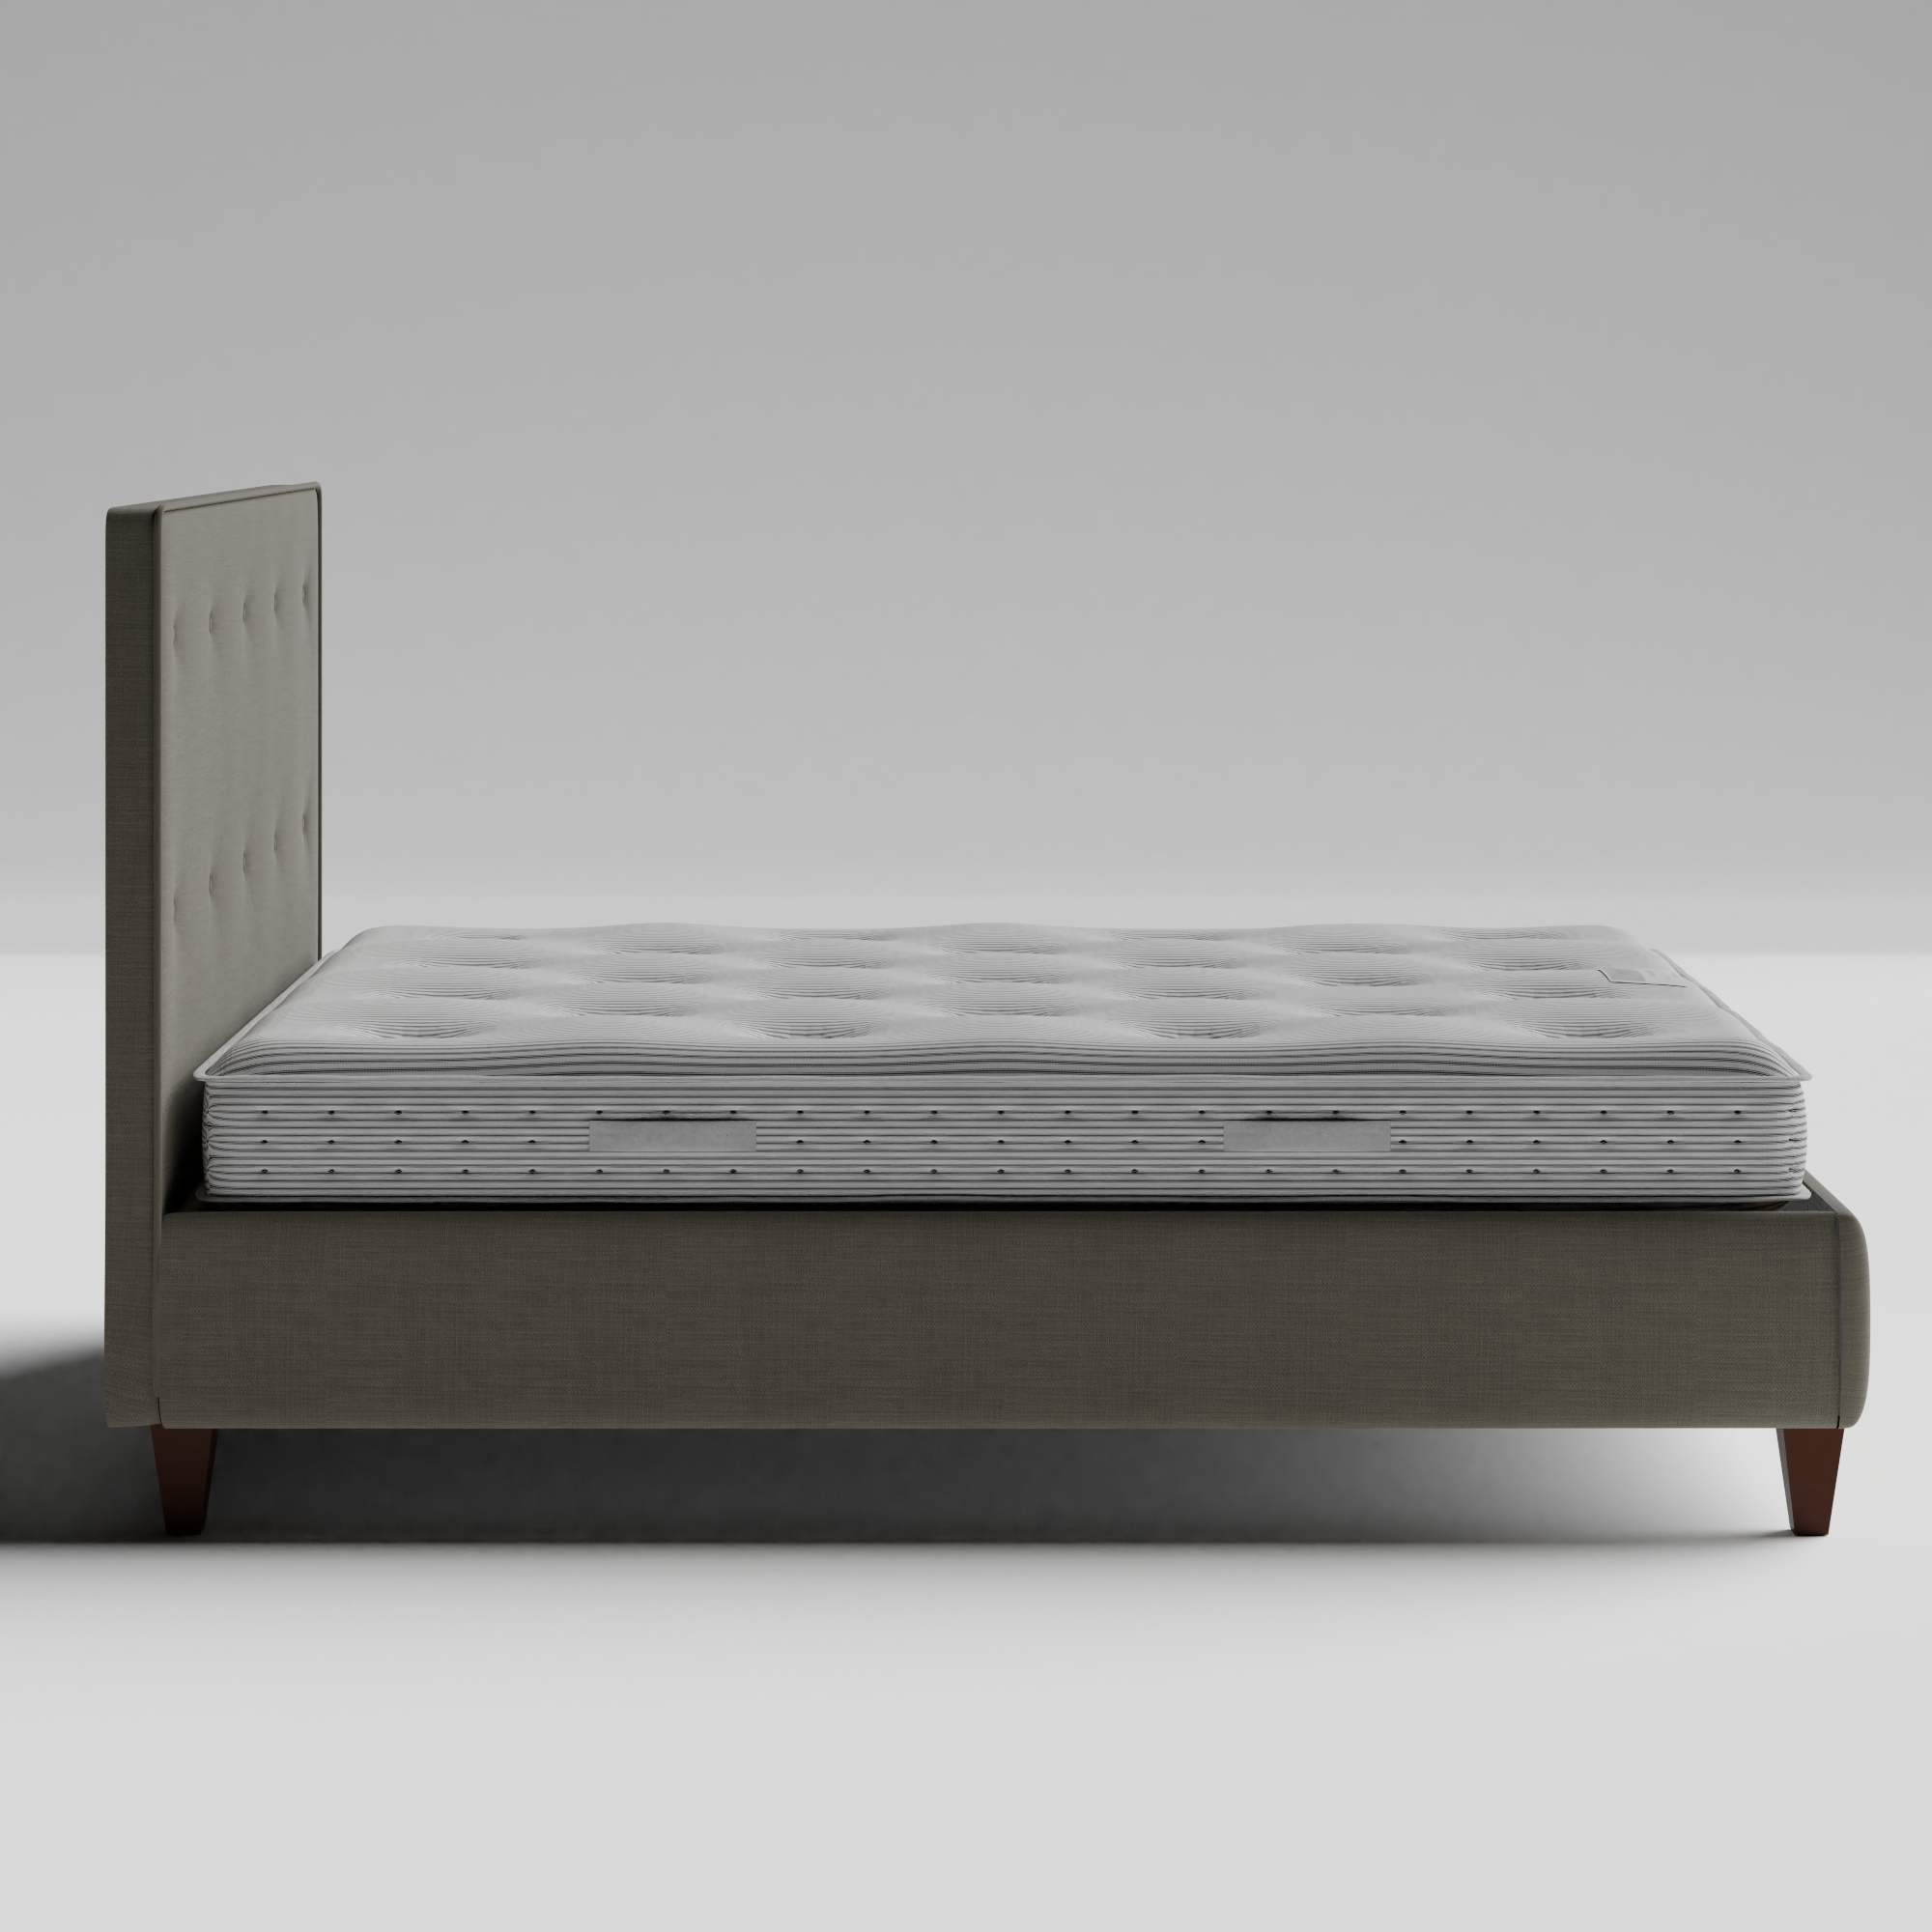 Yushan Buttoned upholstered bed in grey fabric with Juno mattress